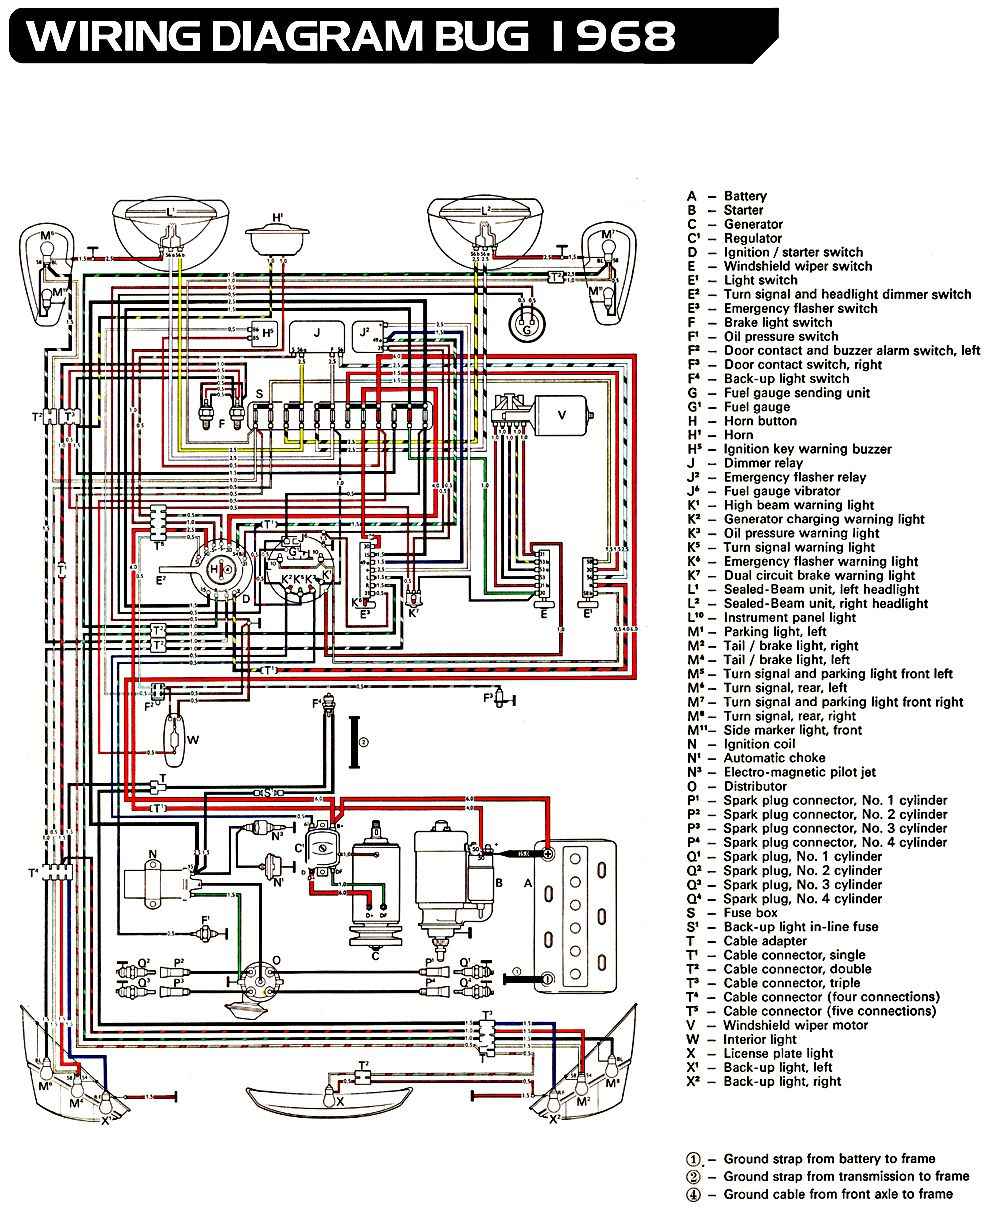 1969 vw bug fuse diagram wiring diagram for you1969 vw wiring diagram wiring diagram yes 1969 [ 996 x 1211 Pixel ]